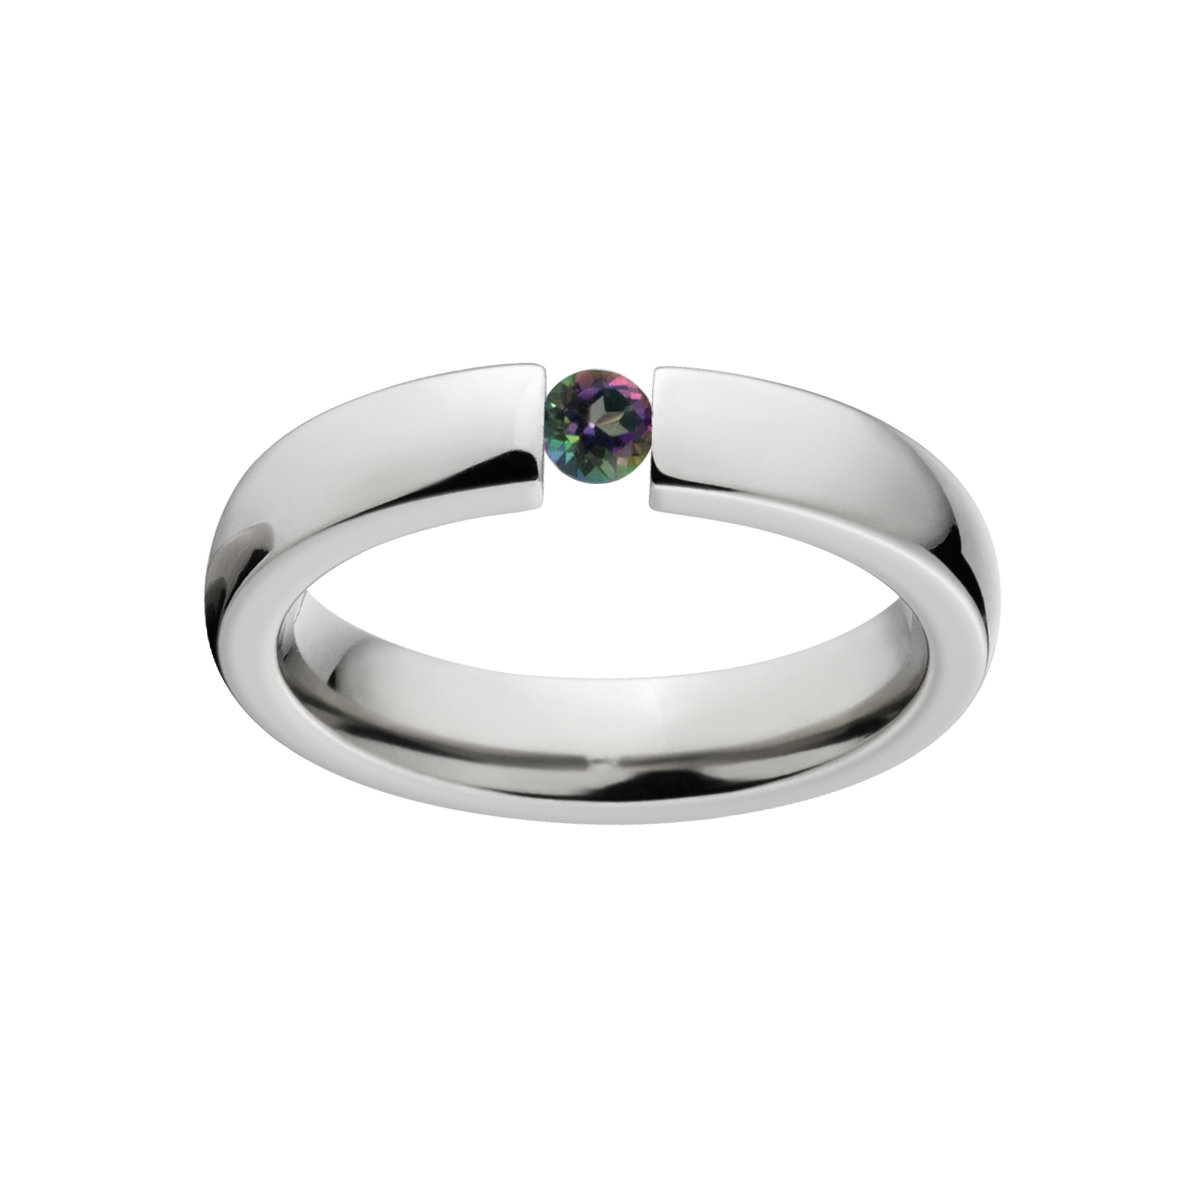 Mystic Topaz 4mm Stainless Steel Tension Set Ring by Luxurien